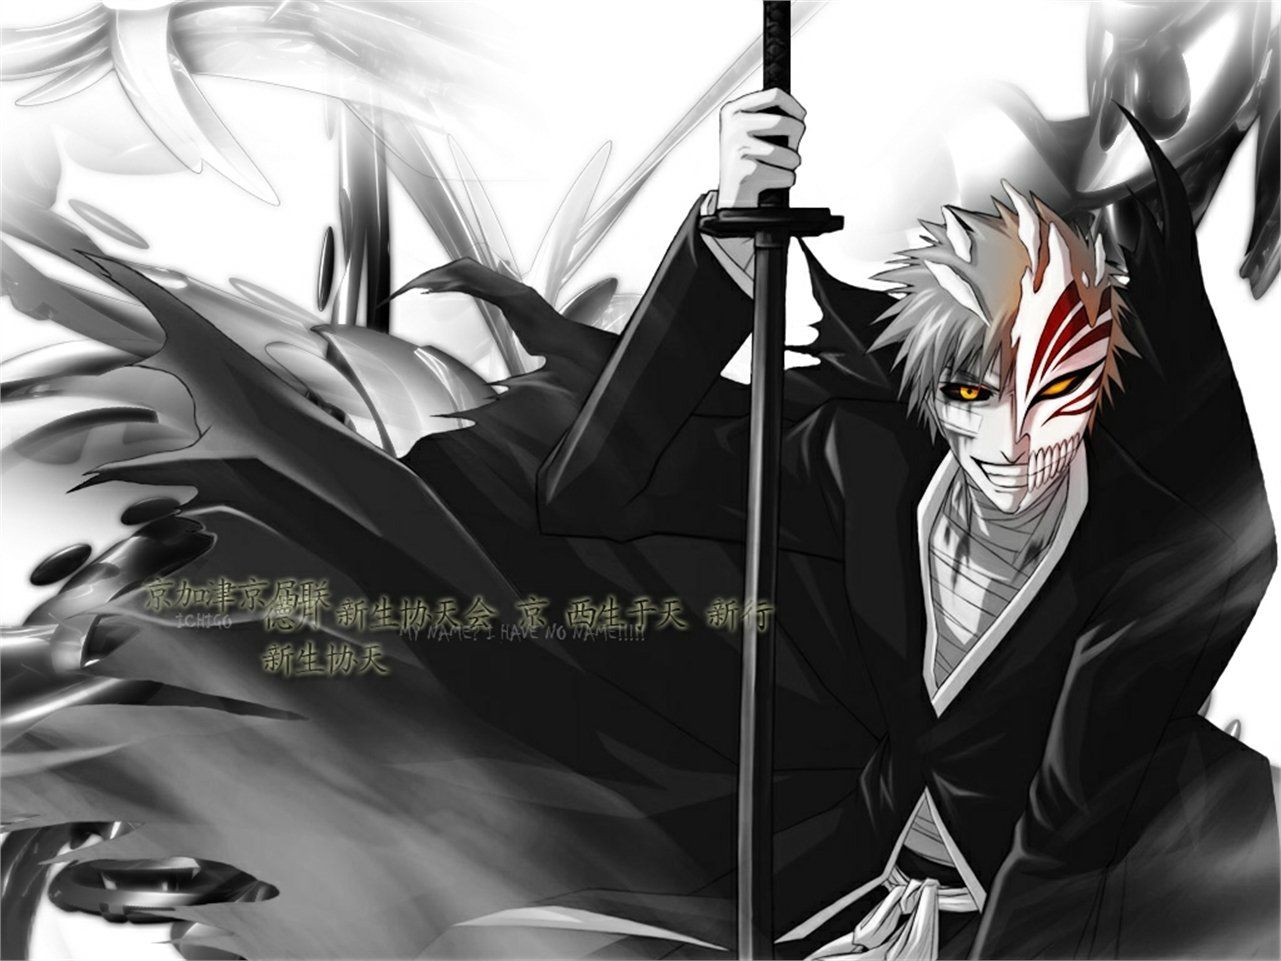 Bleach Anime Wallpapers - Top Free